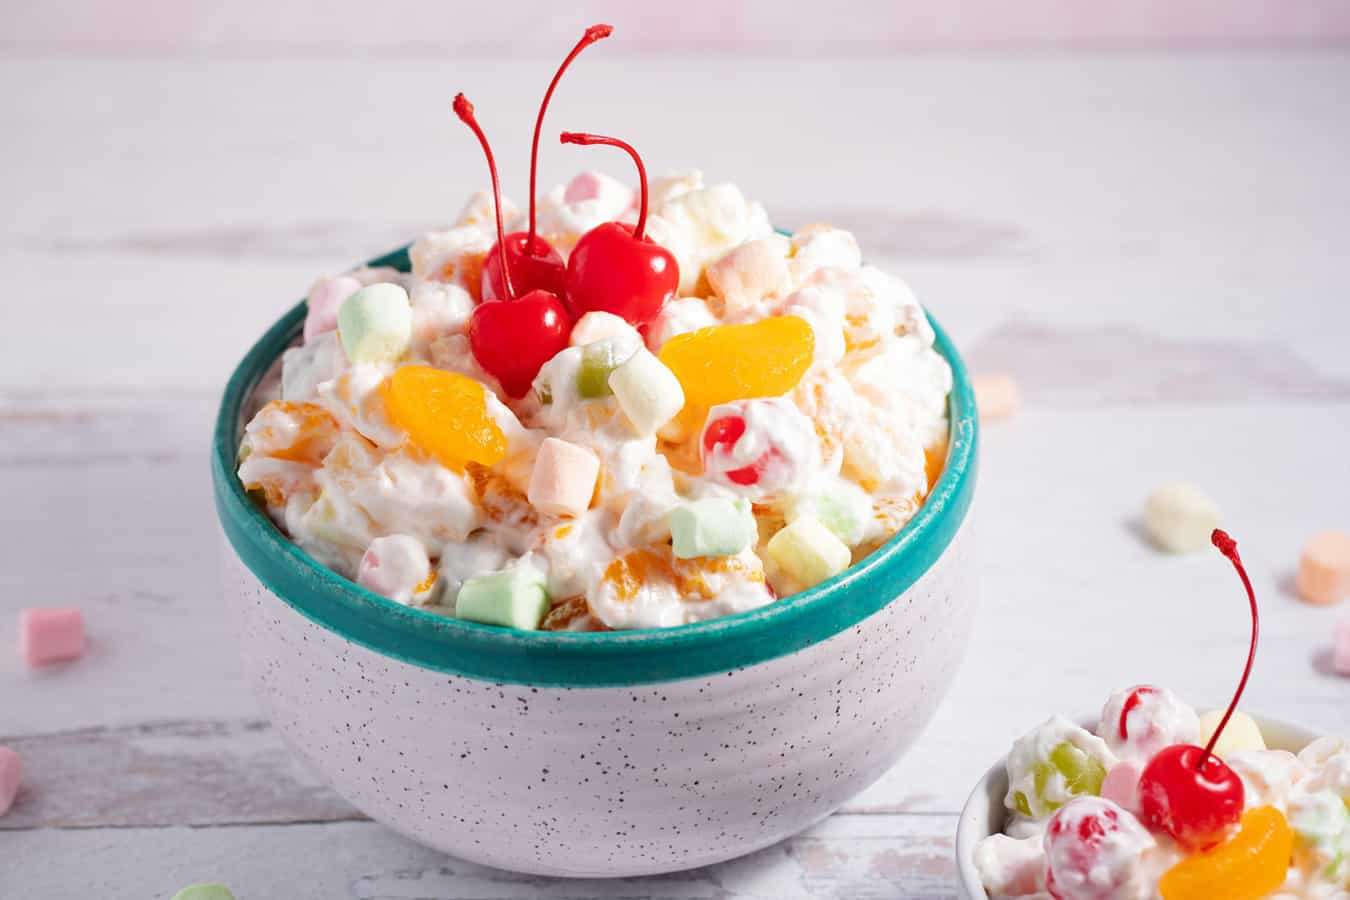 small and large bowls of ambrosia salad